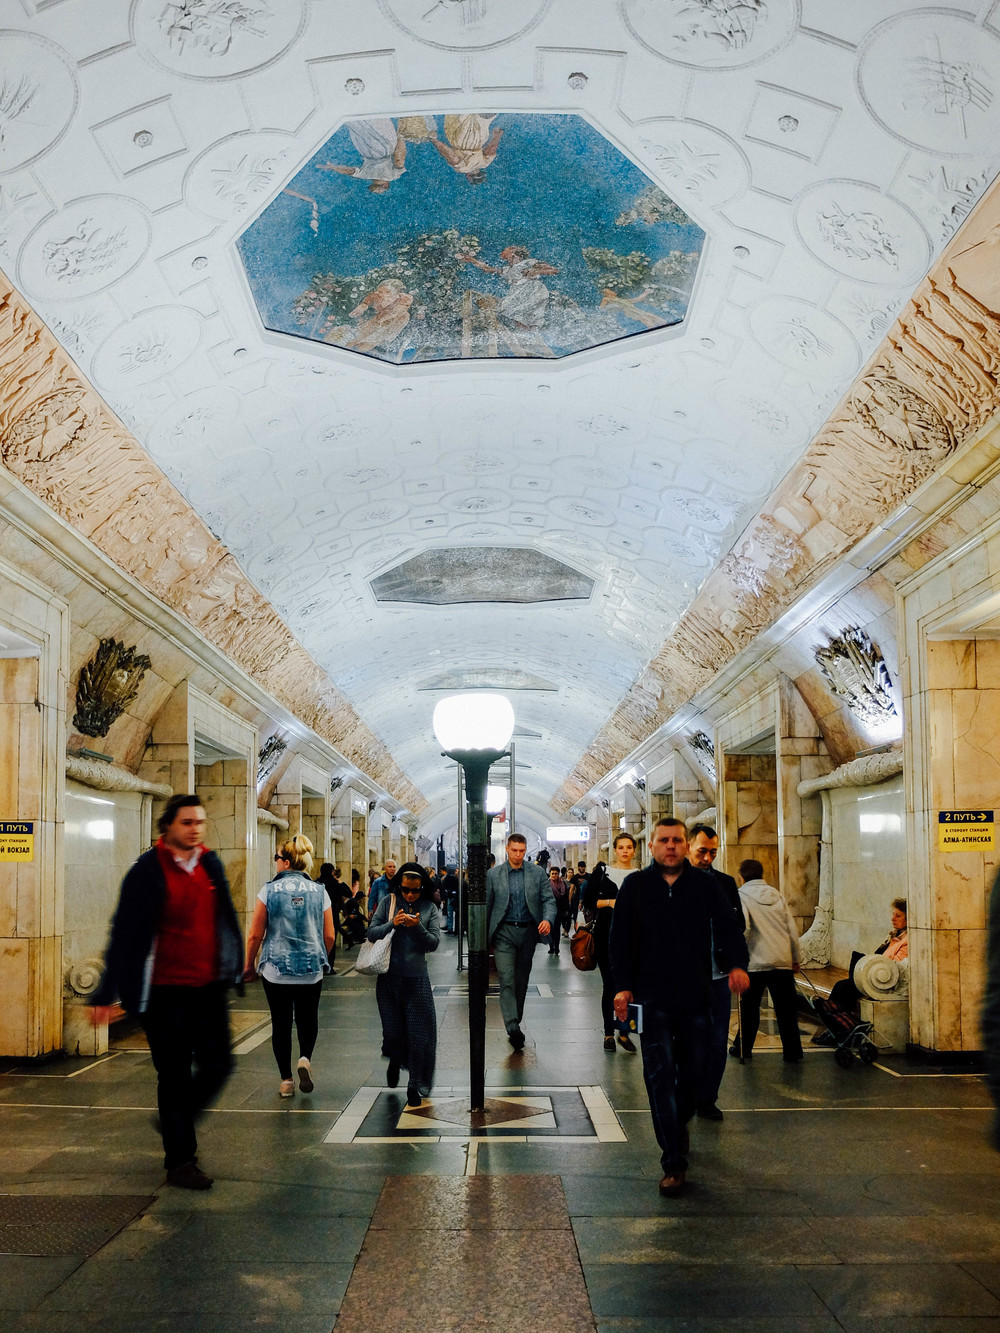 Train Station in Moscow